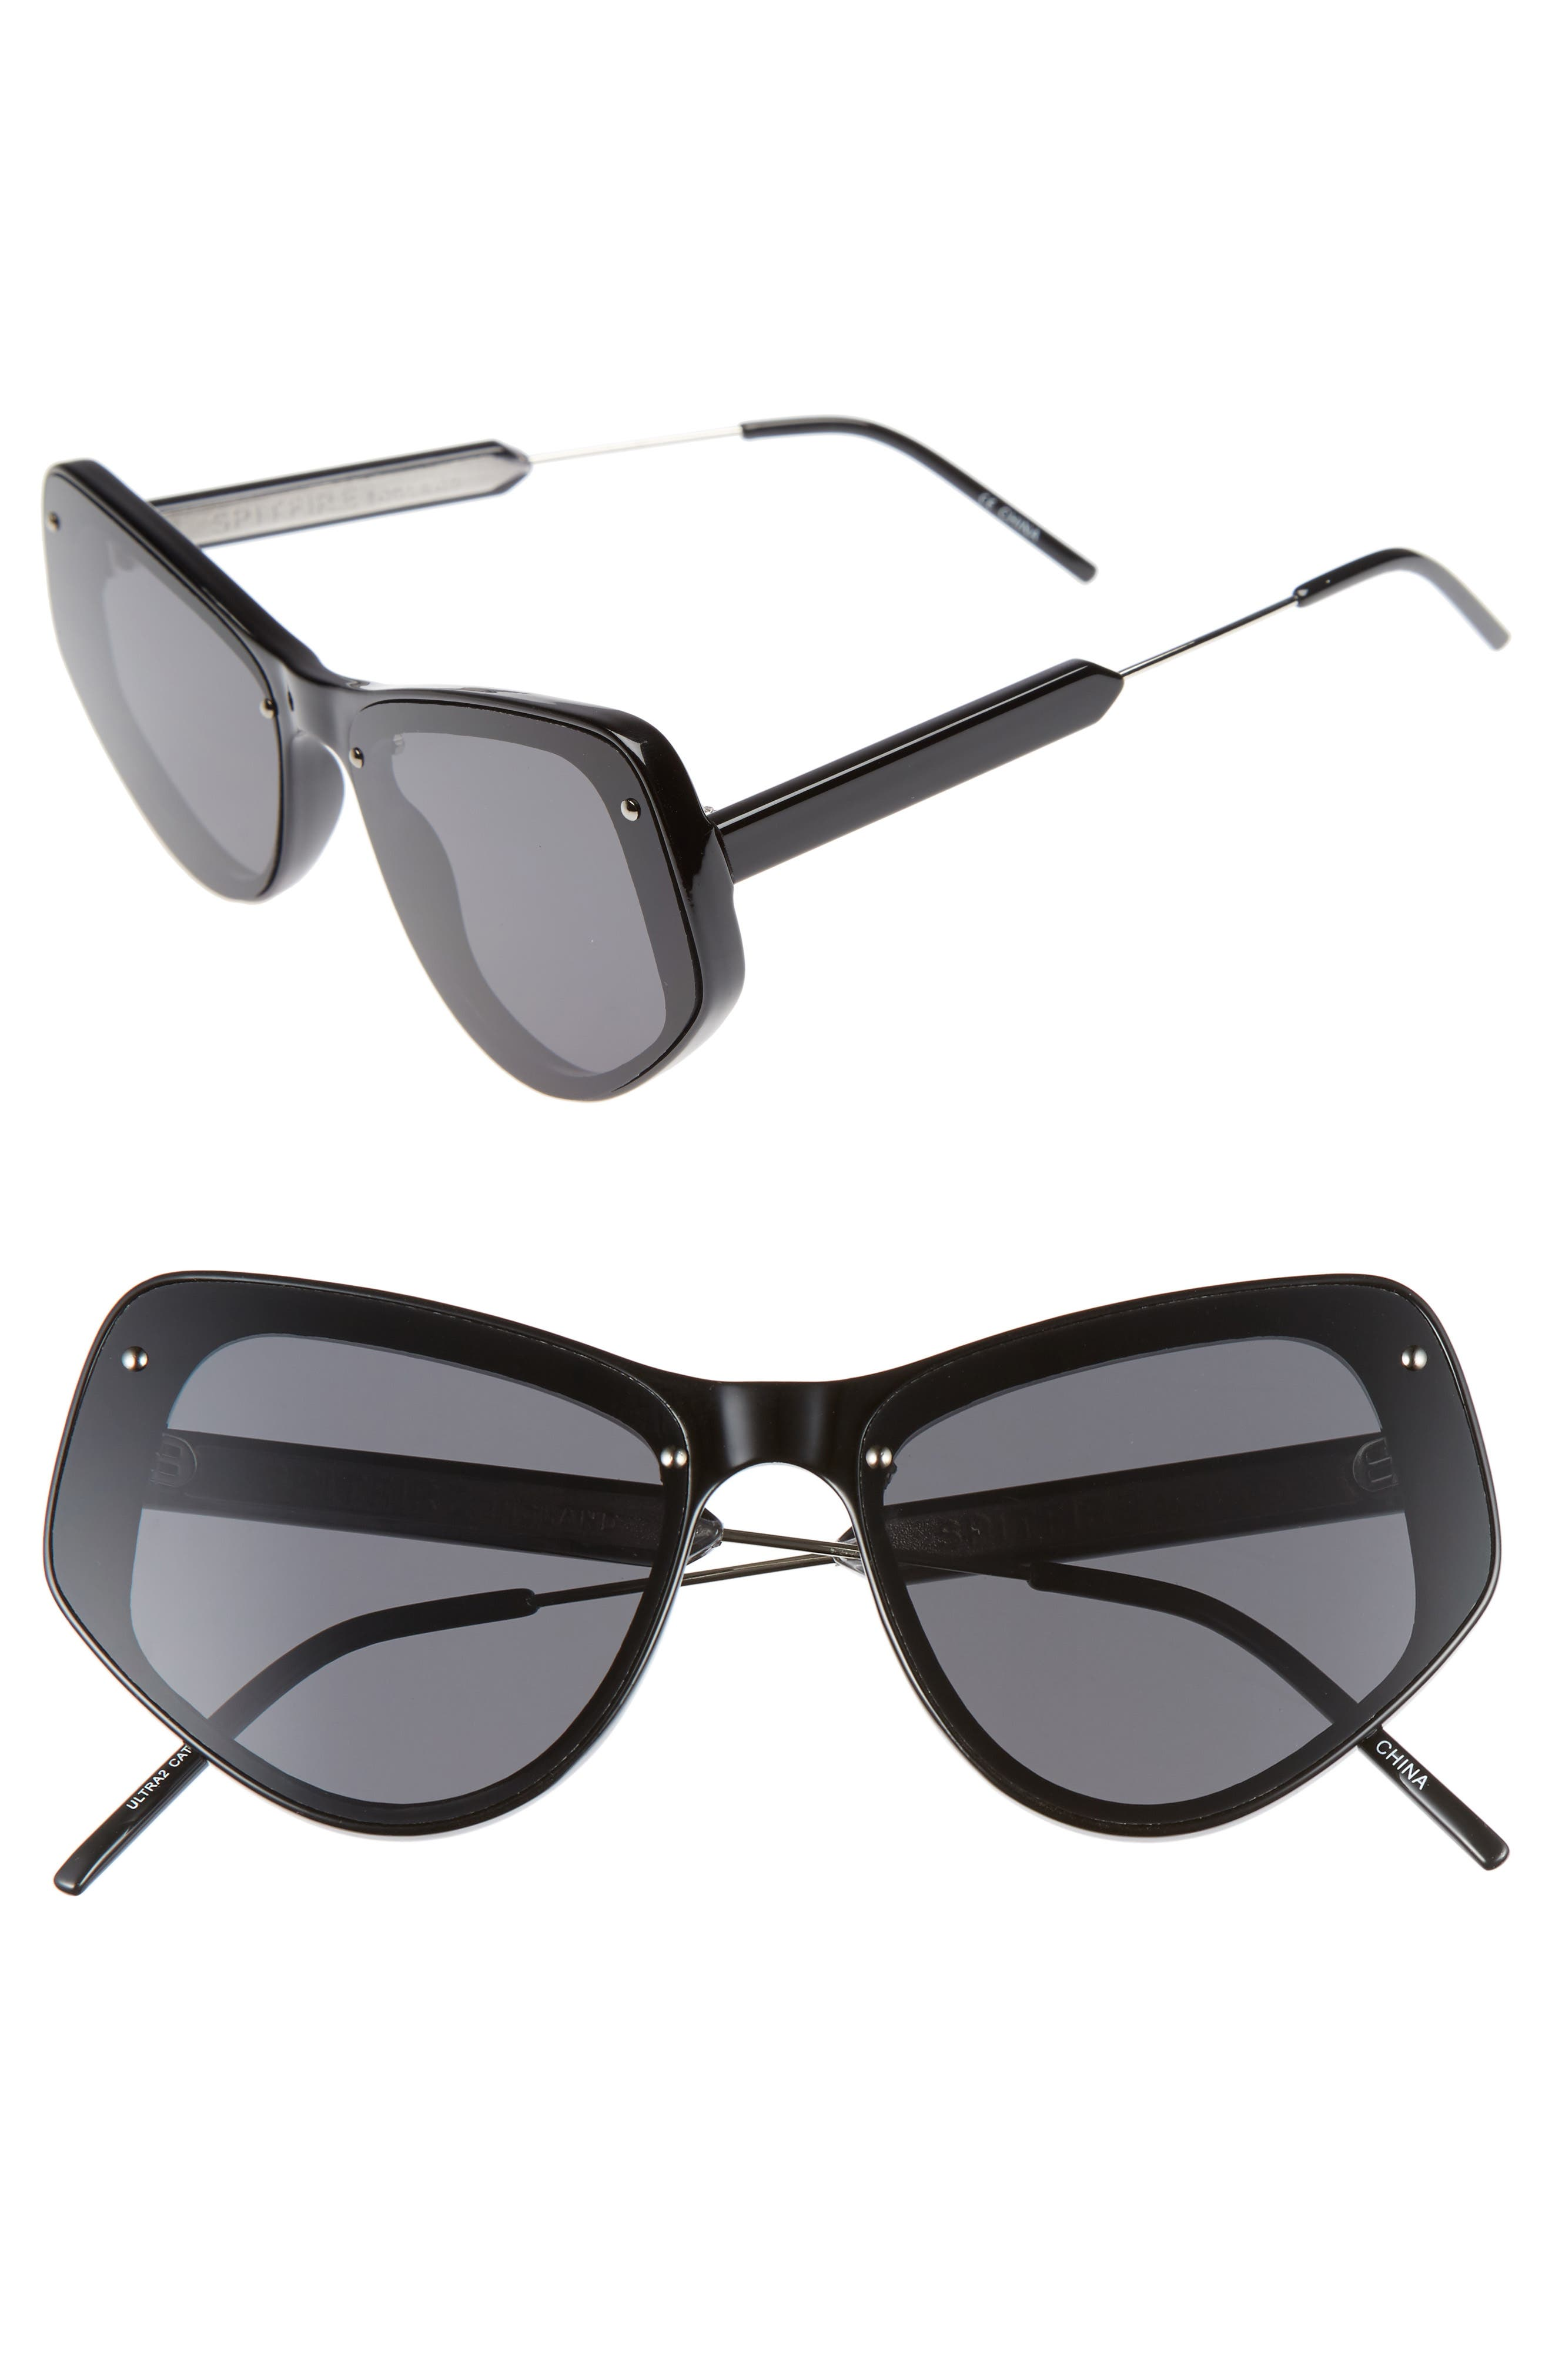 Spitfire Ultra 2 62mm Mirrored Sunglasses